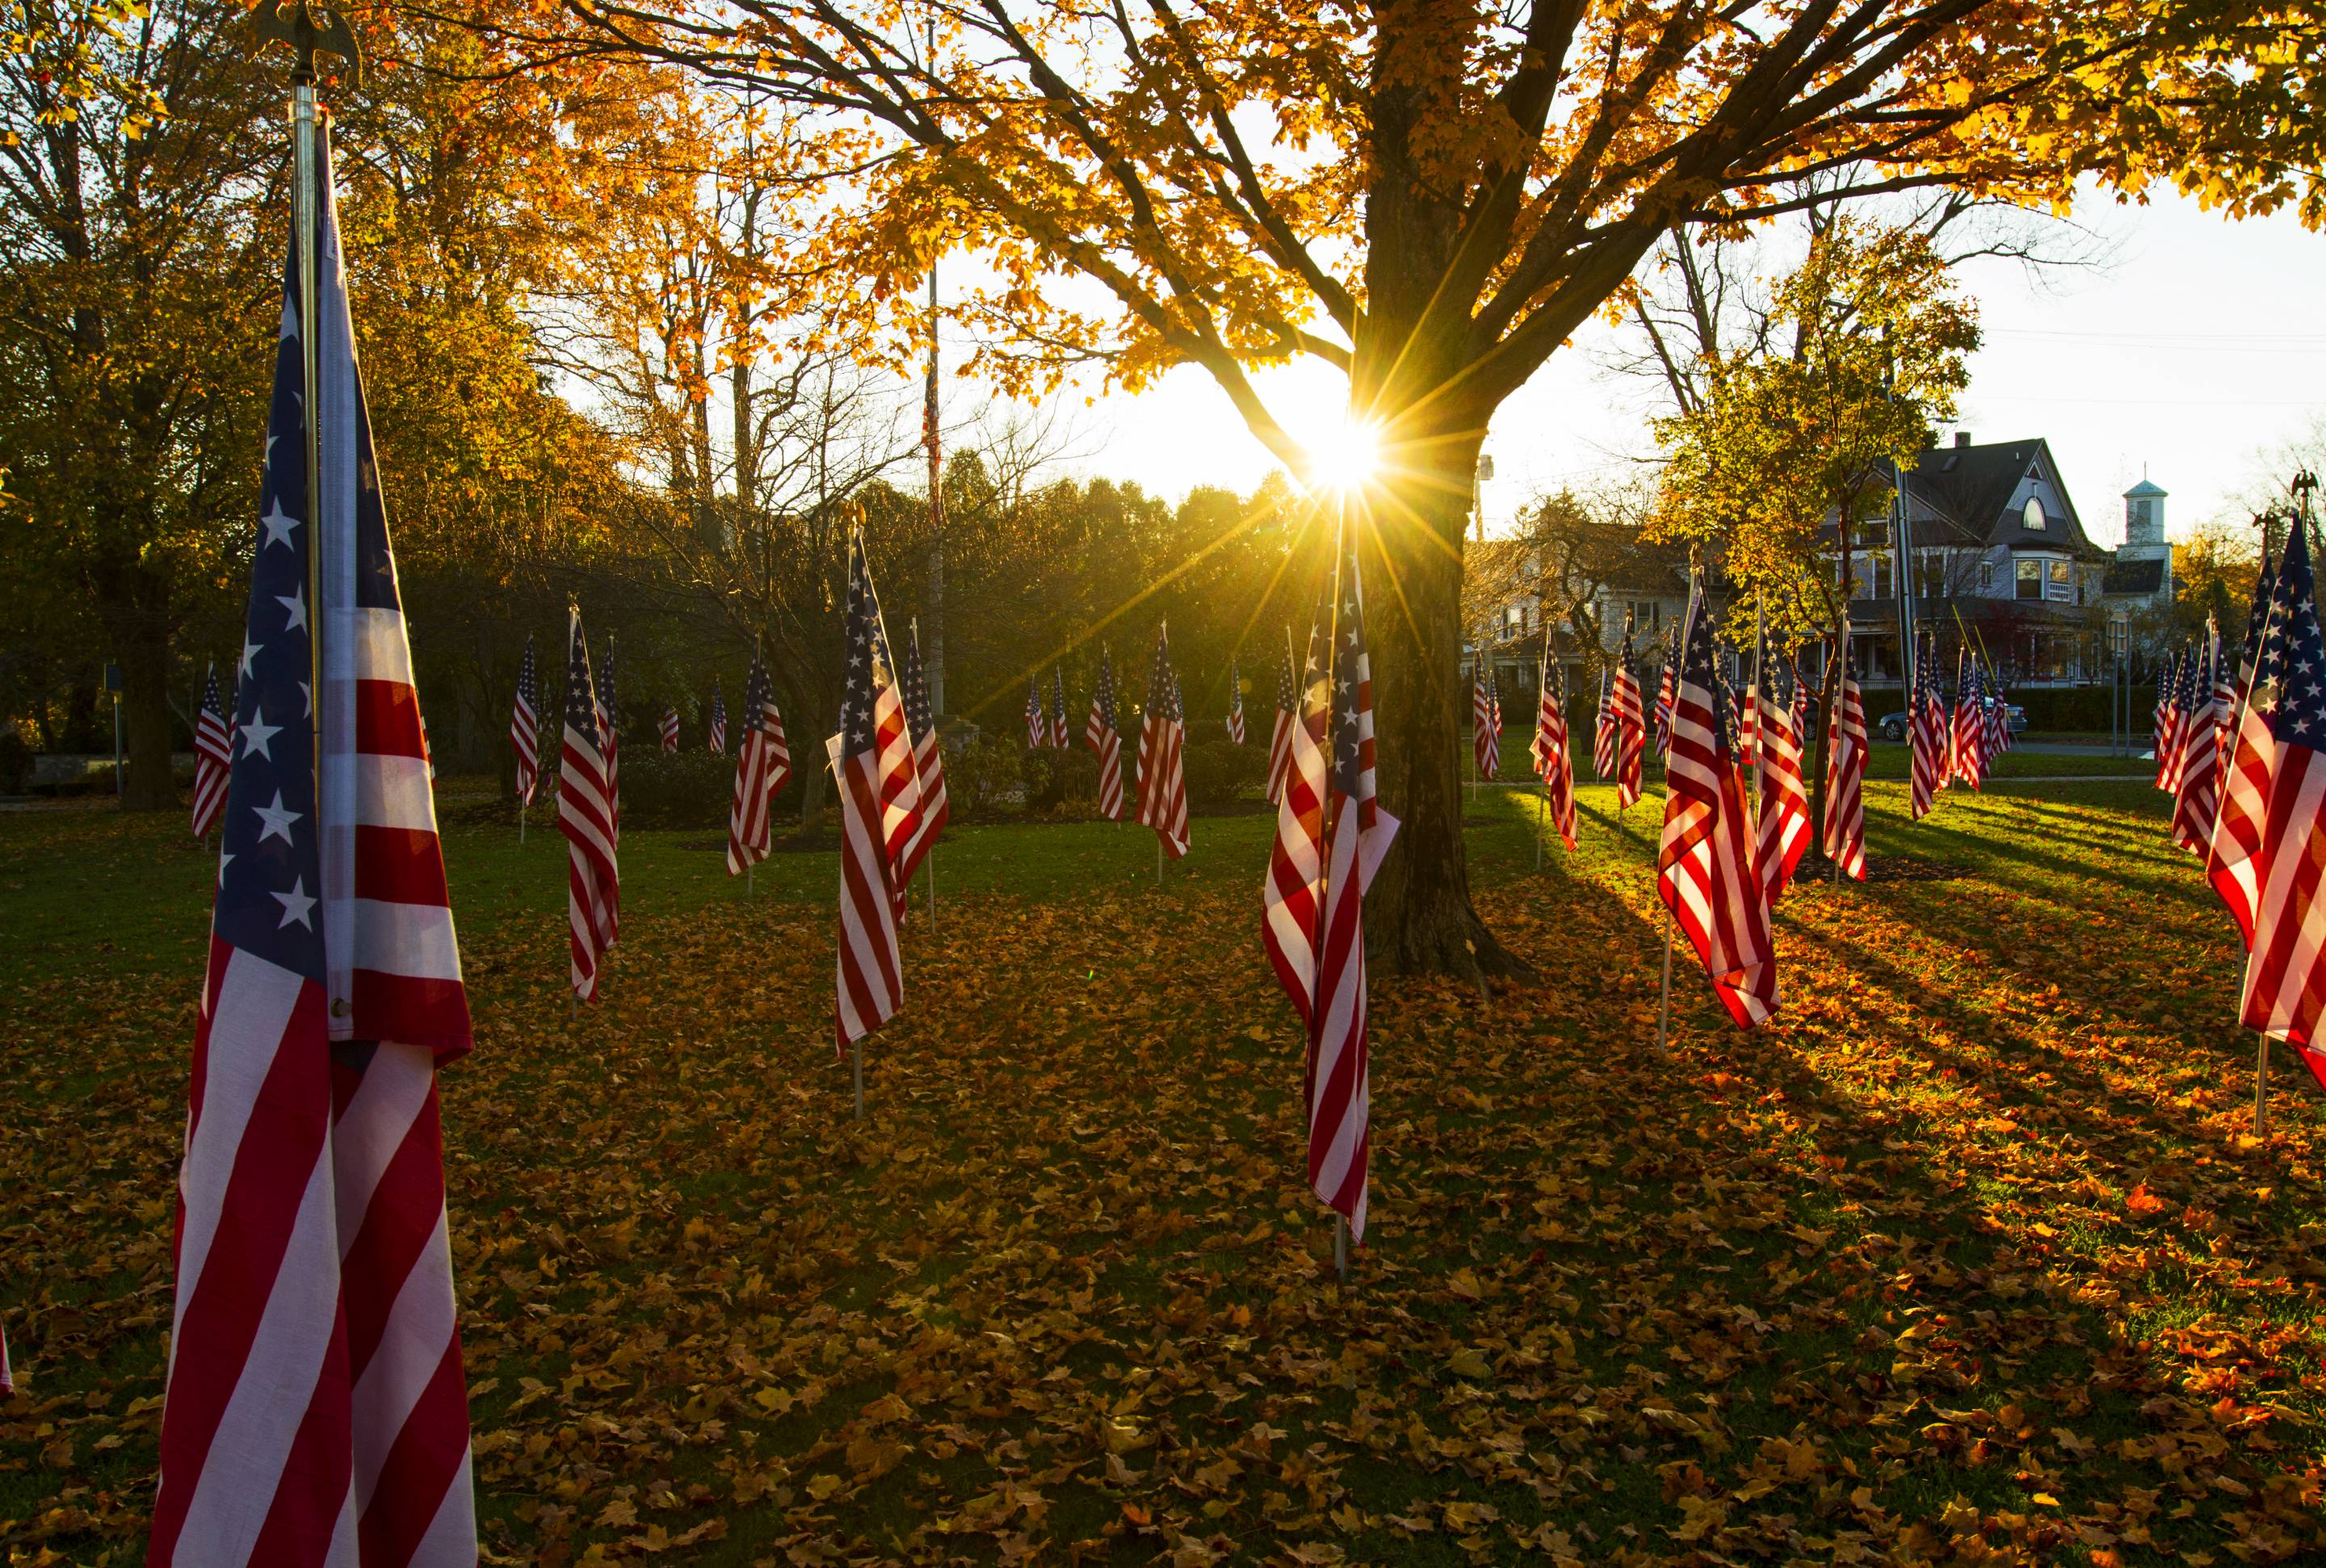 10 Trauma-Informed Ways to Observe Veterans Day